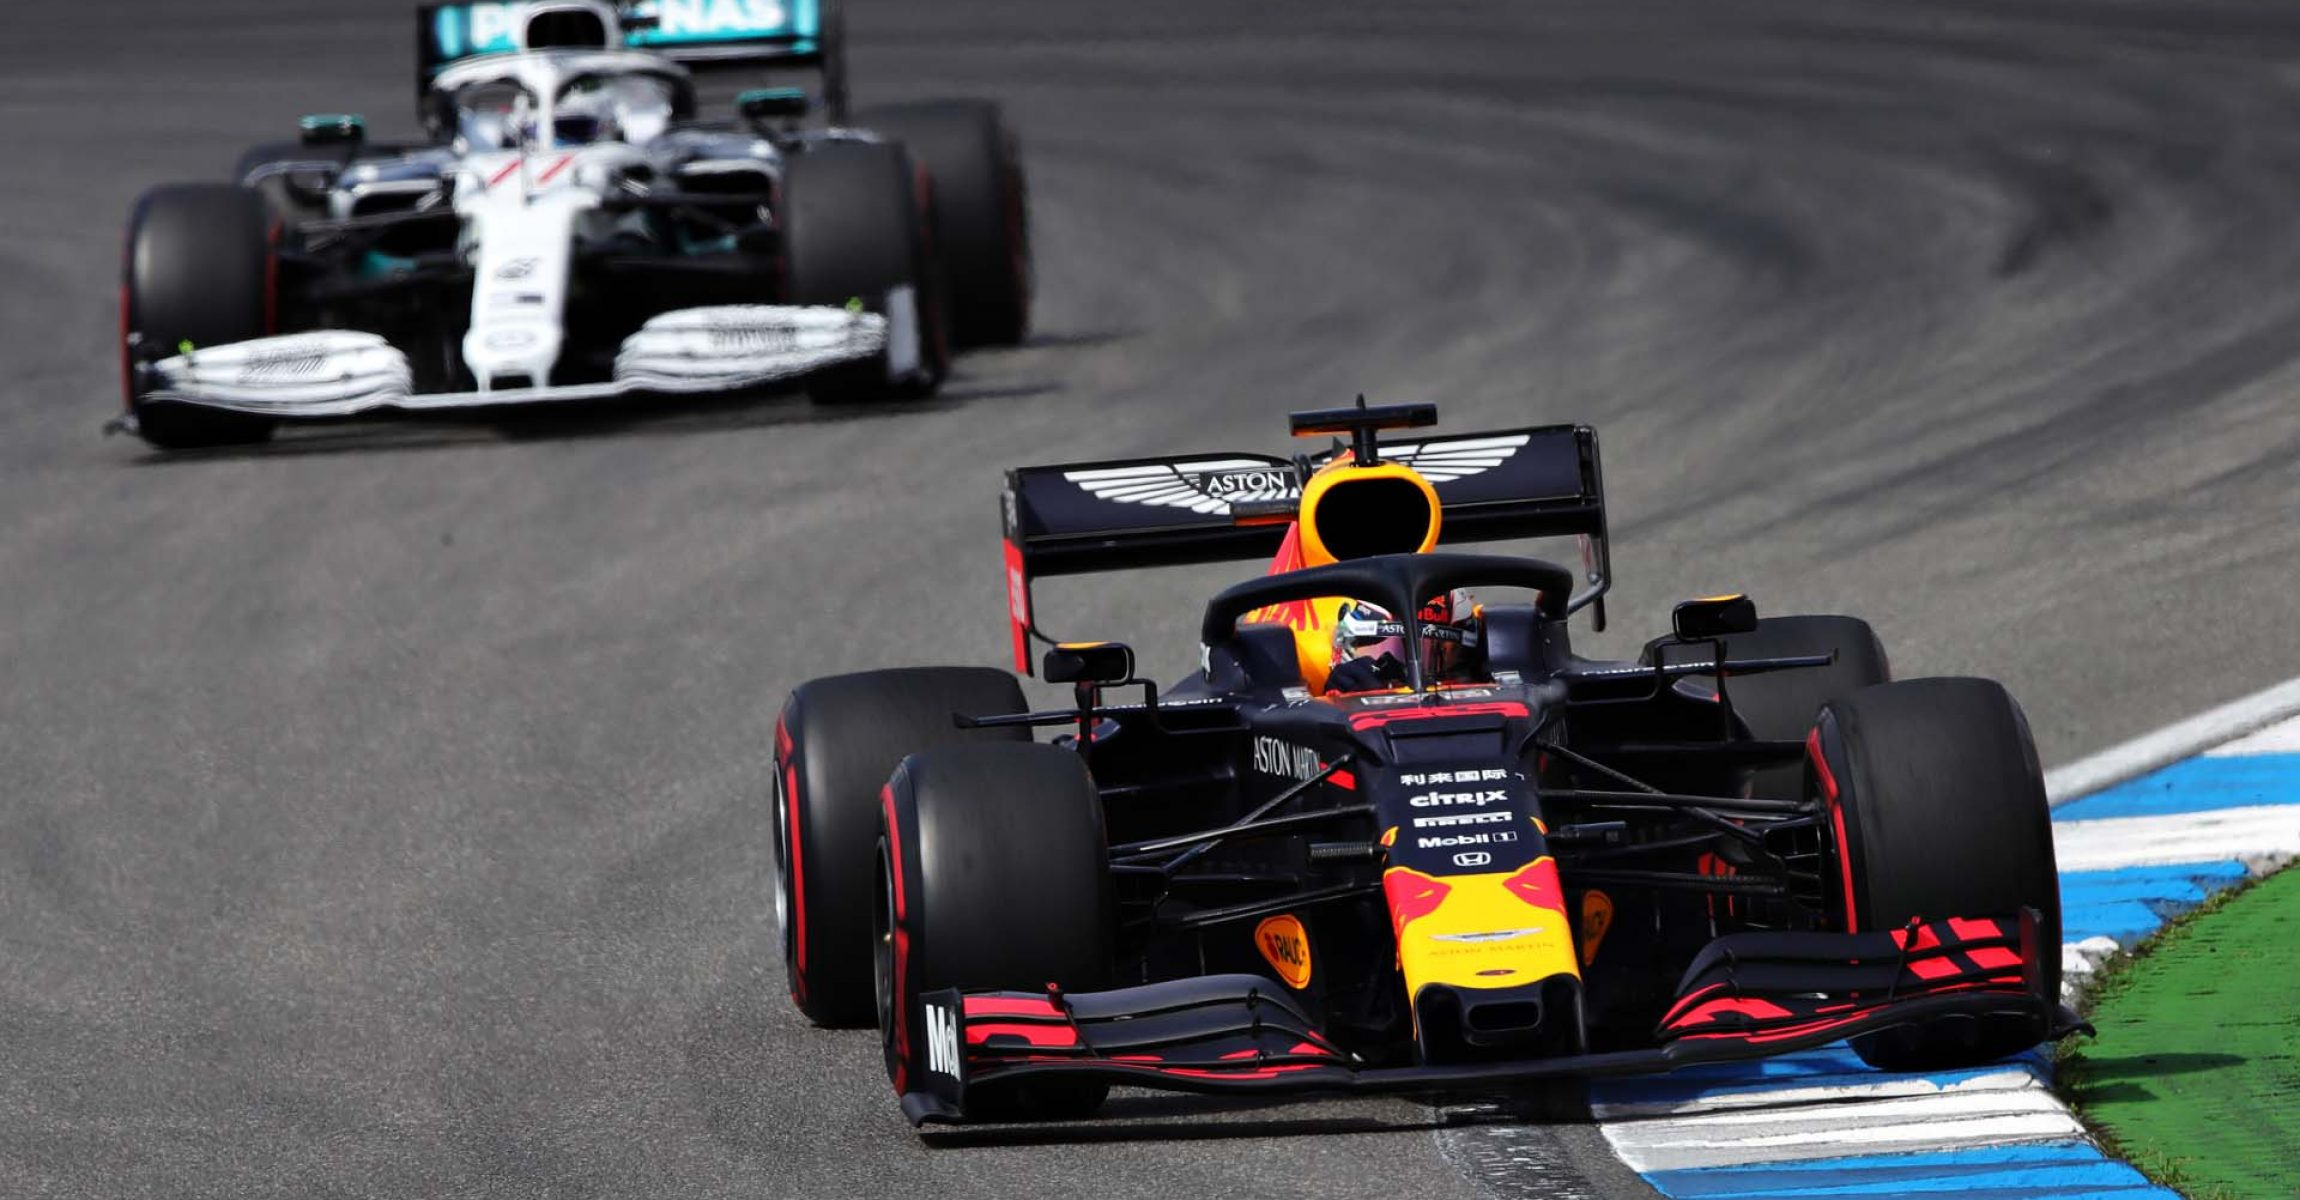 HOCKENHEIM, GERMANY - JULY 27: Max Verstappen of the Netherlands driving the (33) Aston Martin Red Bull Racing RB15 leads Valtteri Bottas driving the (77) Mercedes AMG Petronas F1 Team Mercedes W10 on track during qualifying for the F1 Grand Prix of Germany at Hockenheimring on July 27, 2019 in Hockenheim, Germany. (Photo by Alexander Hassenstein/Getty Images) // Getty Images / Red Bull Content Pool  // AP-212Y598S12111 // Usage for editorial use only // Please go to www.redbullcontentpool.com for further information. //